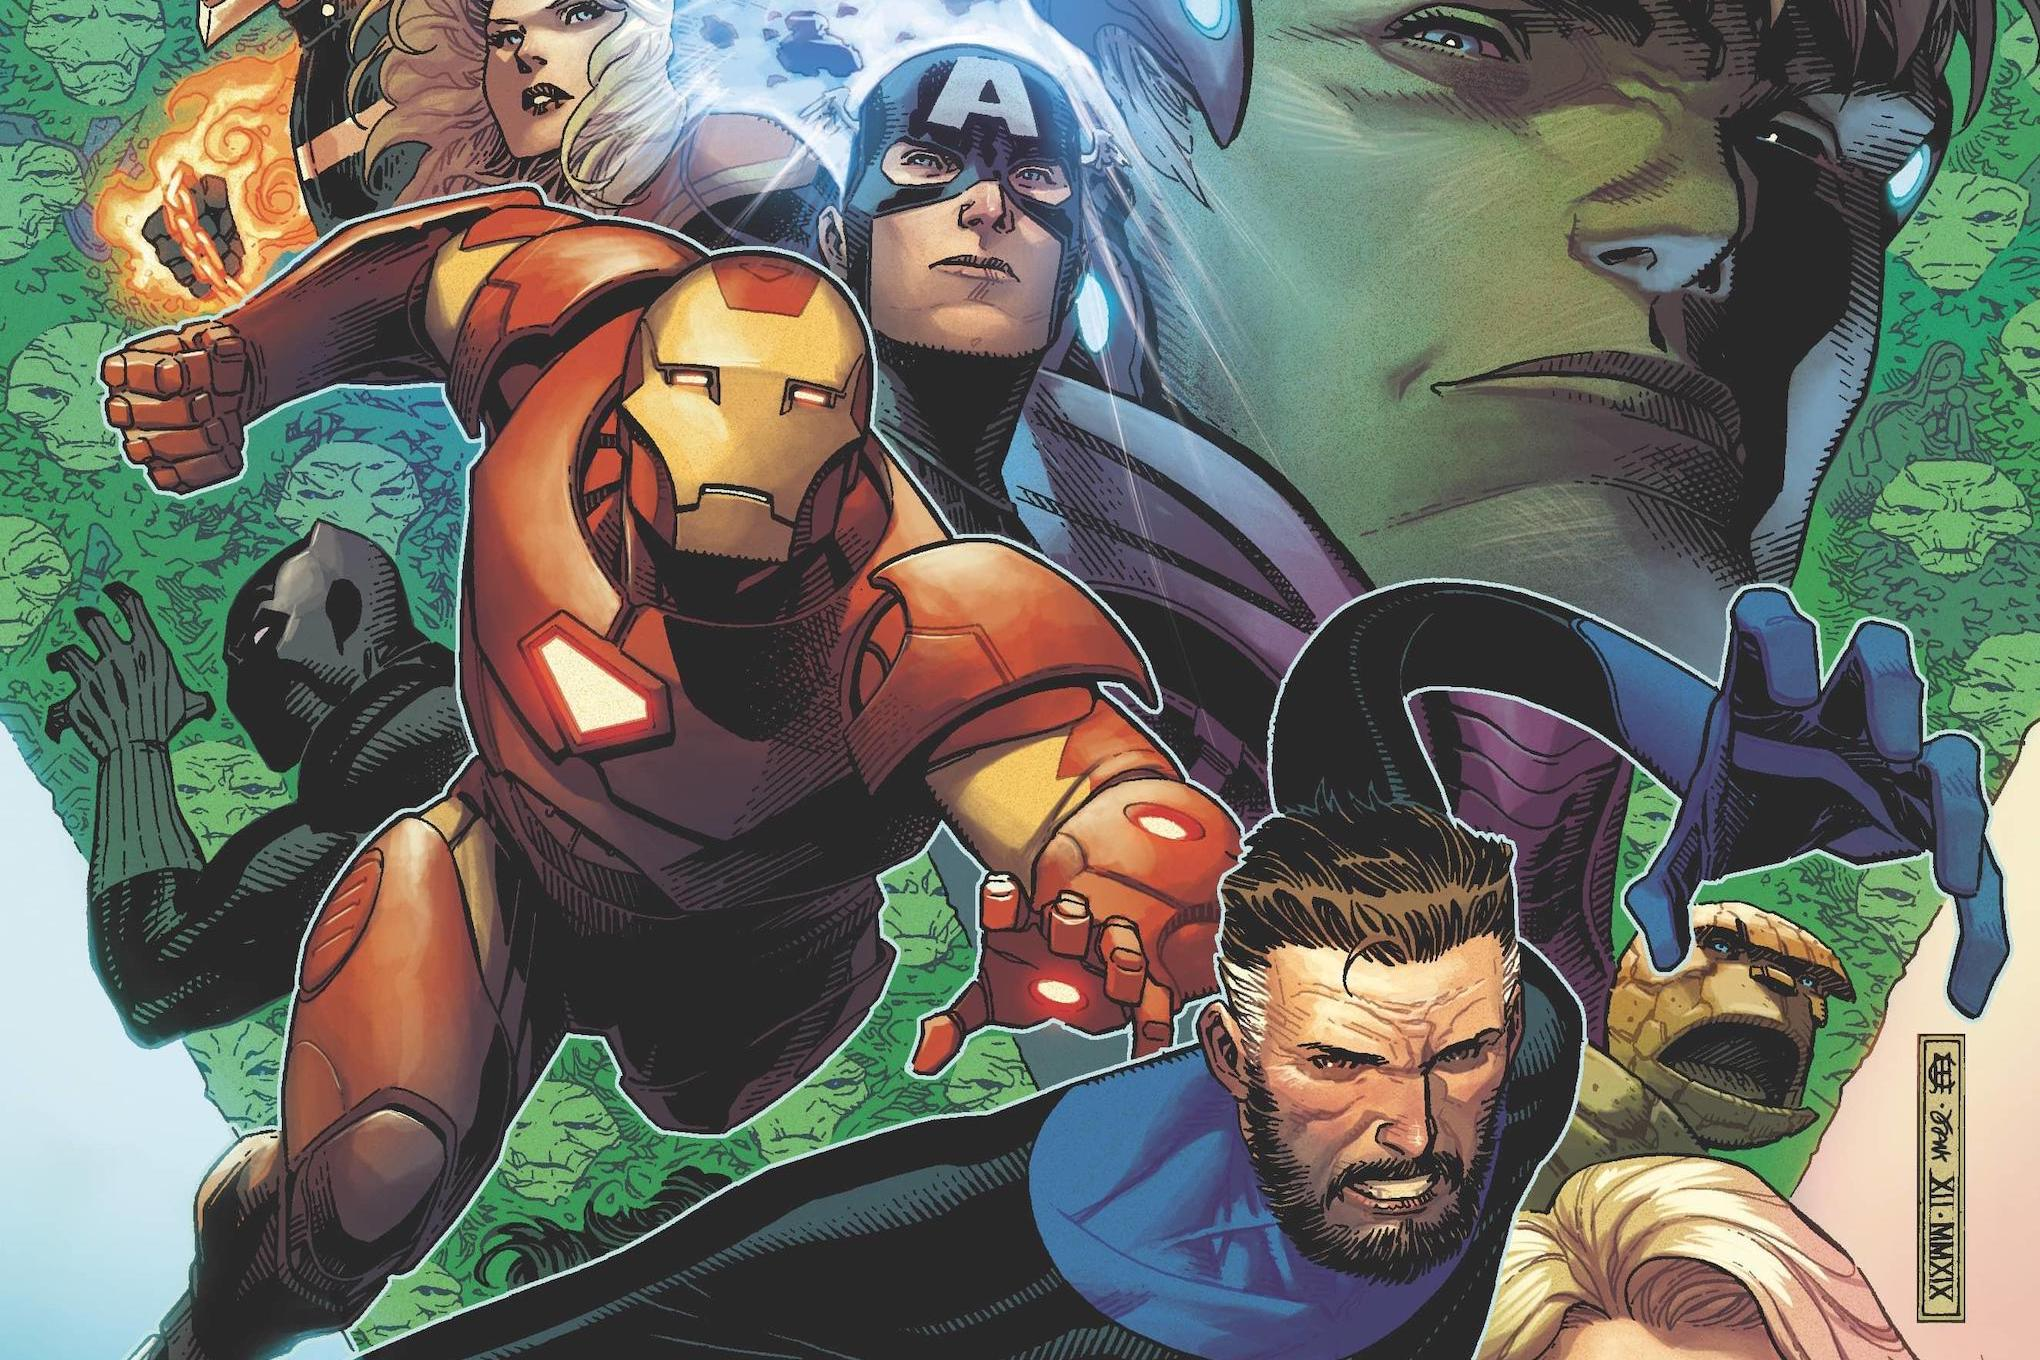 The Avengers and the Fantastic Four on the cover of Empyre #1, Marvel Comics (2020).